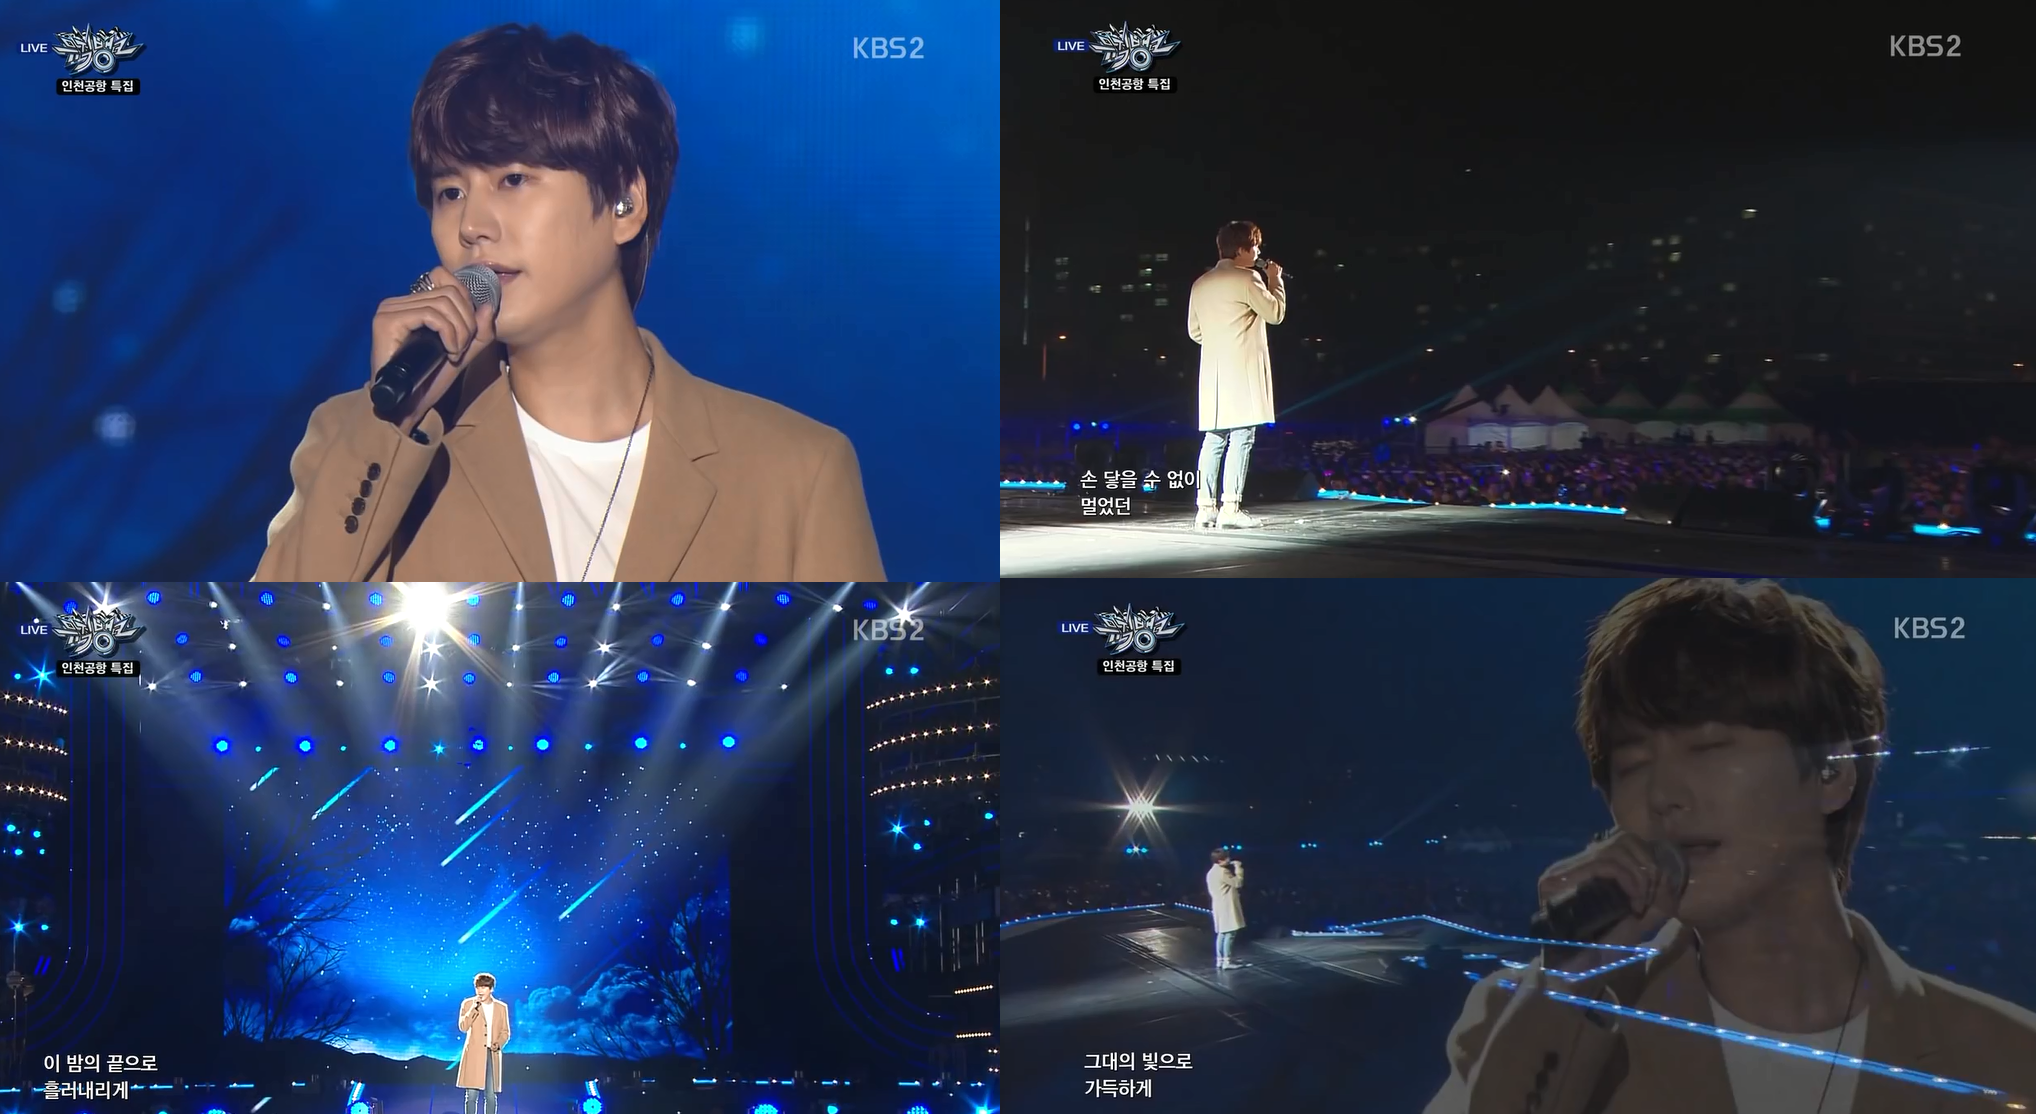 http://s6.picofile.com/file/8236946234/KYUHYUN_Comeback_Stage_A_Million_Pieces_KBS_MUSIC_BANK_2015_10_16.jpg